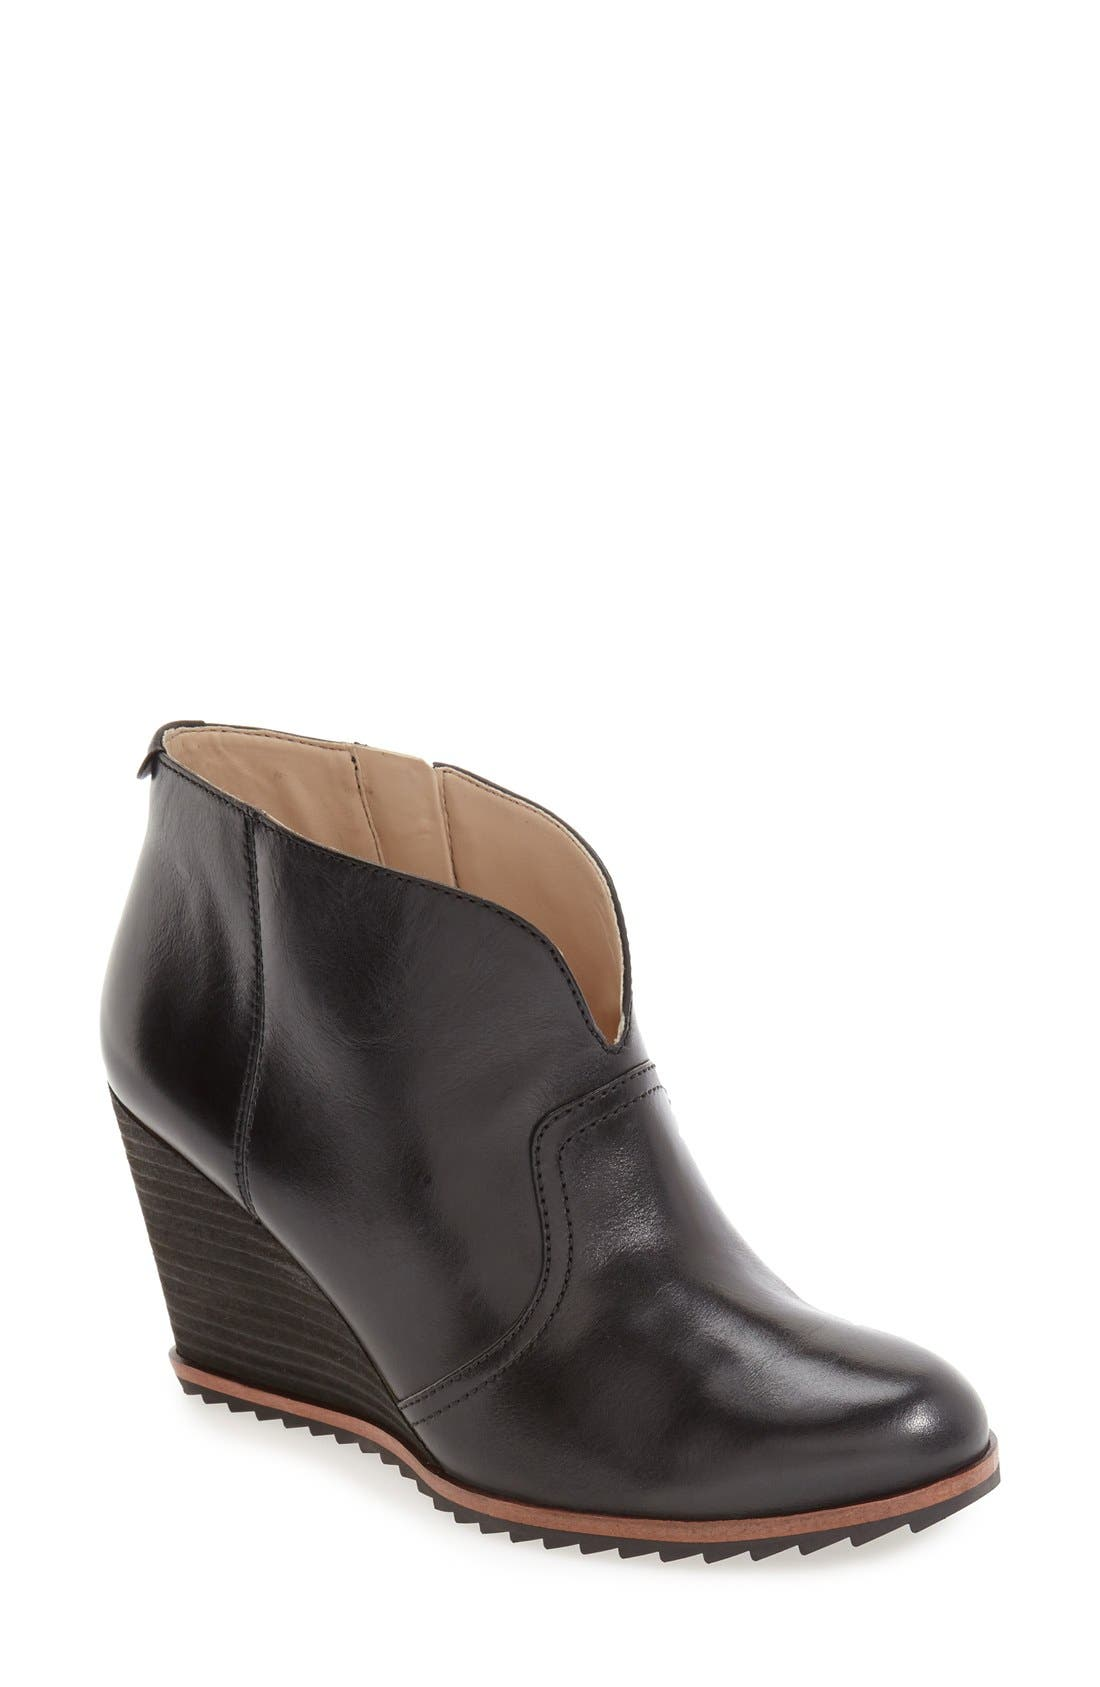 Dr. Scholl's 'Inda' Wedge Bootie (Women)